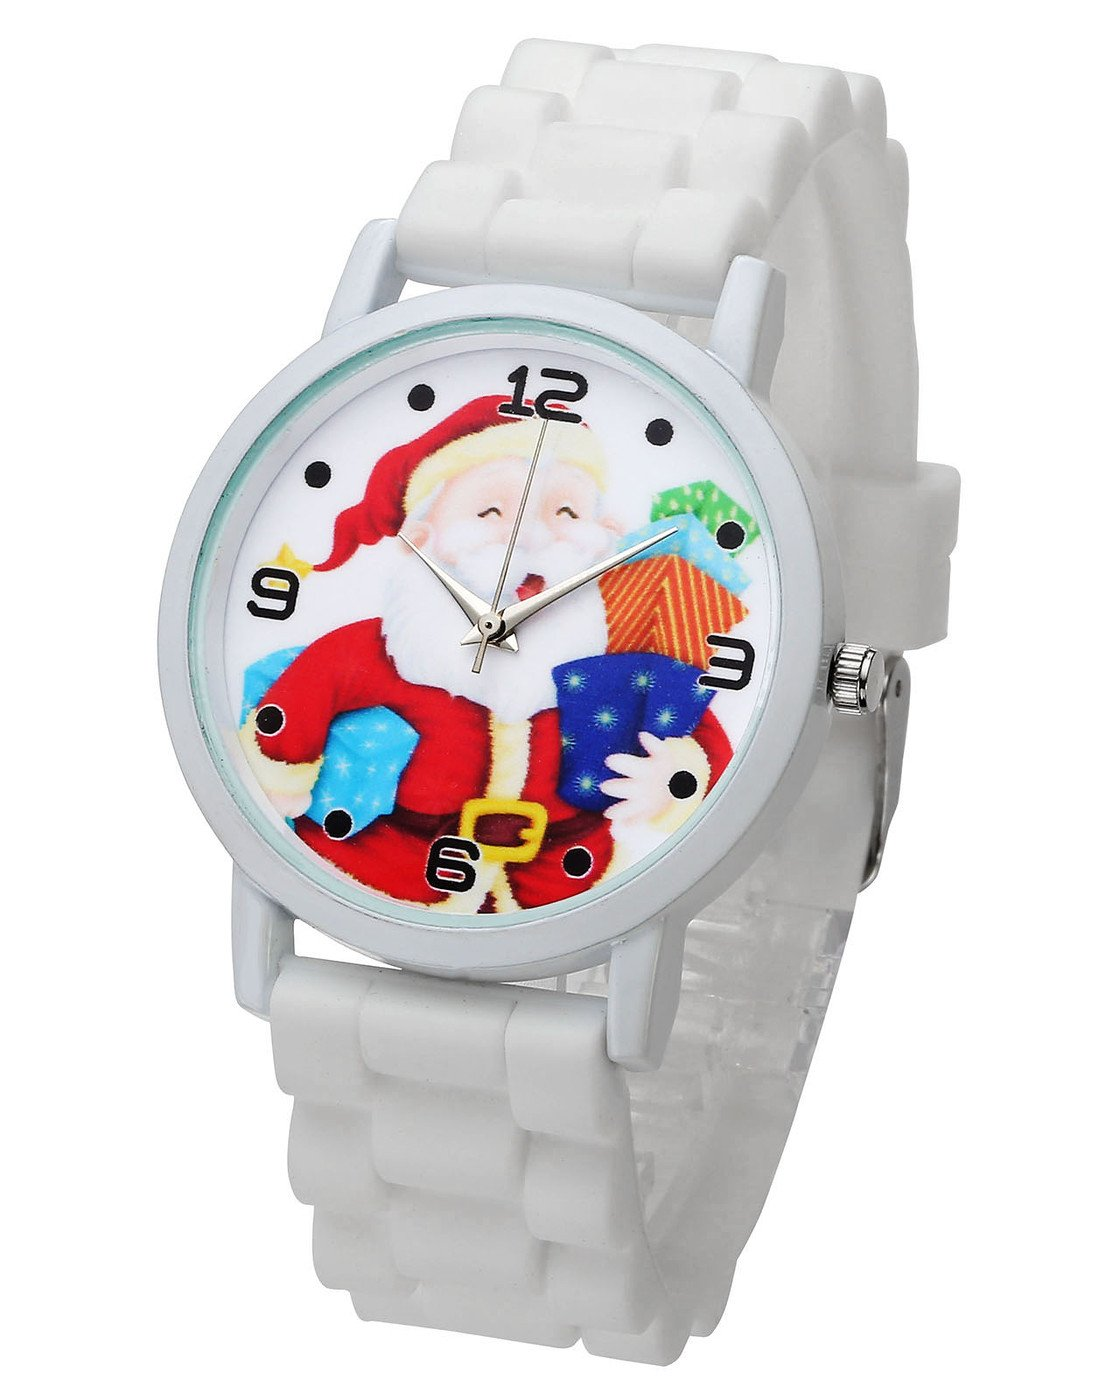 Top Plaza Cute Casual Father Christmas Analog Quartz Watch Santa Claus Pattern Silicone Band Arabic Numerals Wrist Watch for Kids Children #1(White)